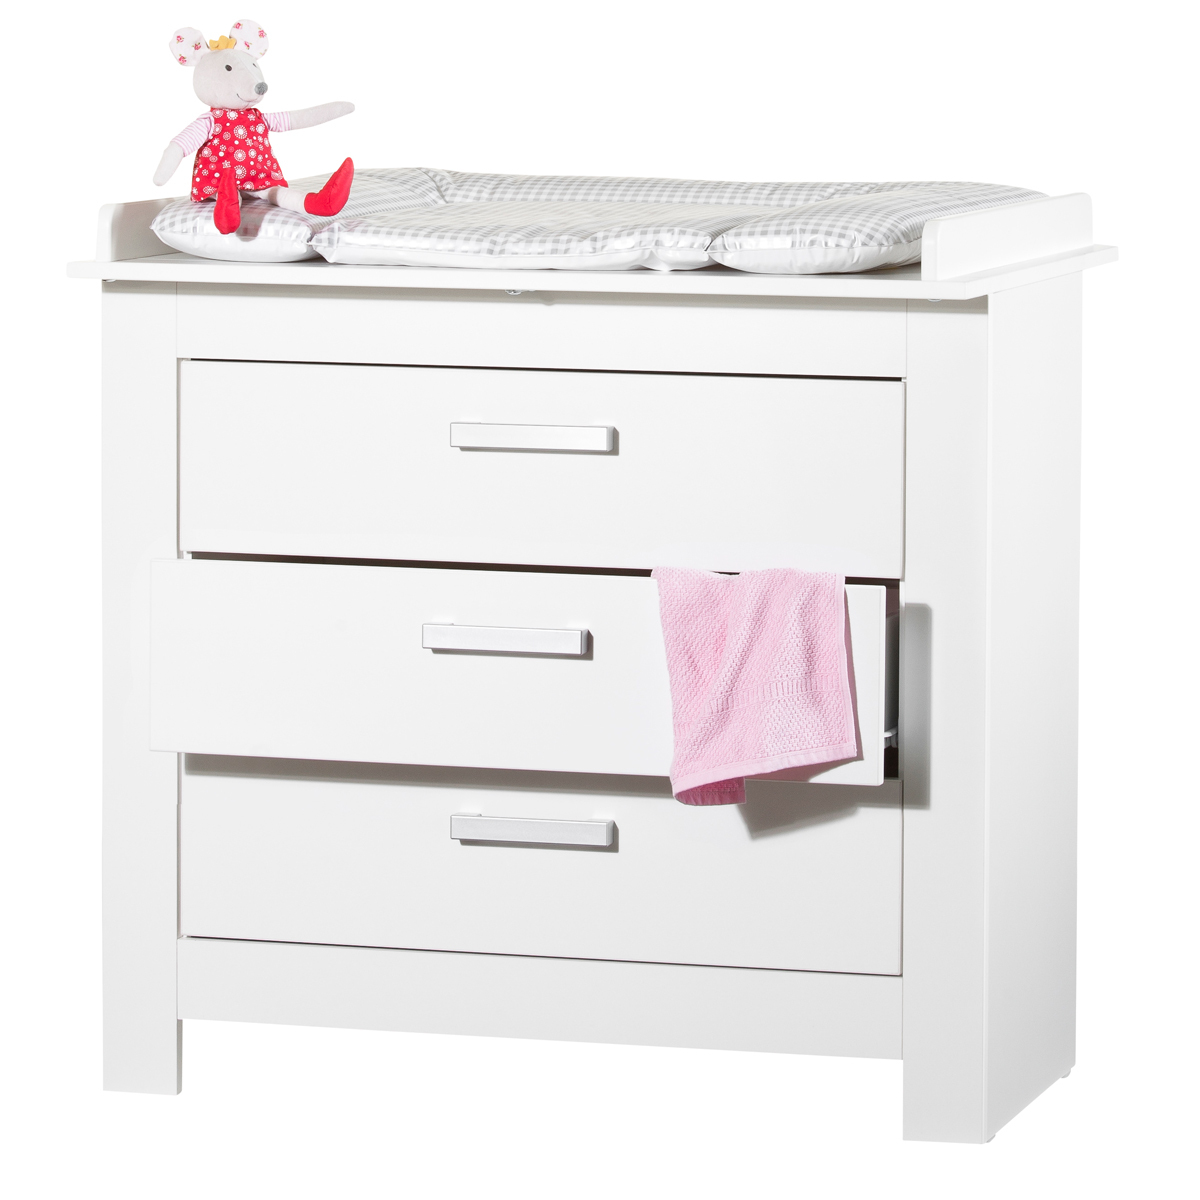 Geuther commode avec plan langer collection marlene - Plan a langer a fixer sur commode ...